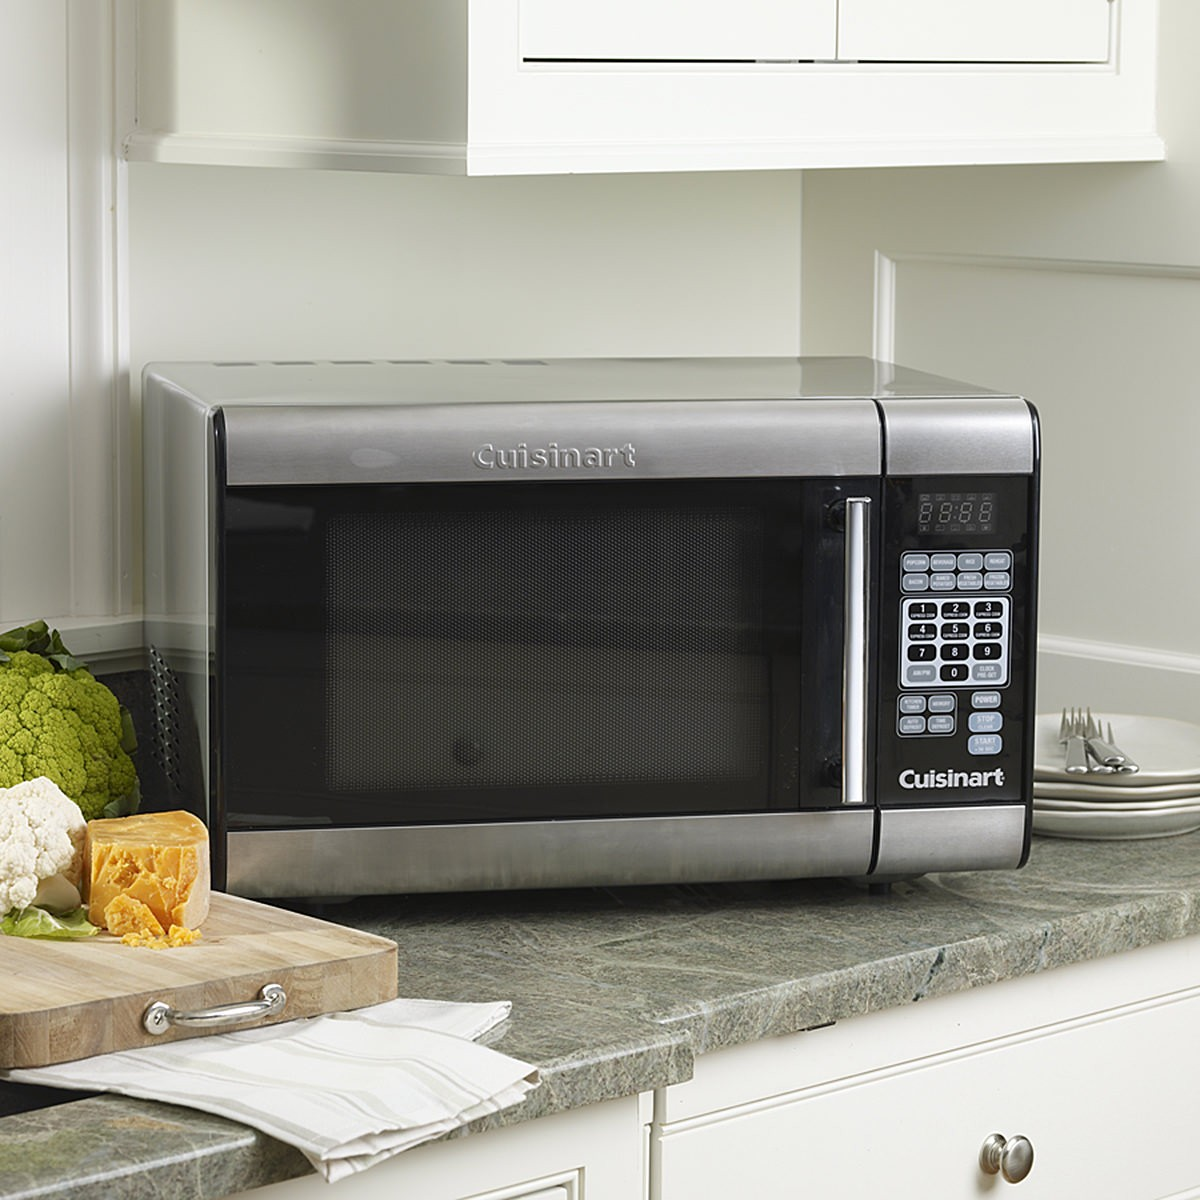 Wi-Fi Not Working or Slower Than Usual? Check Your Microwave